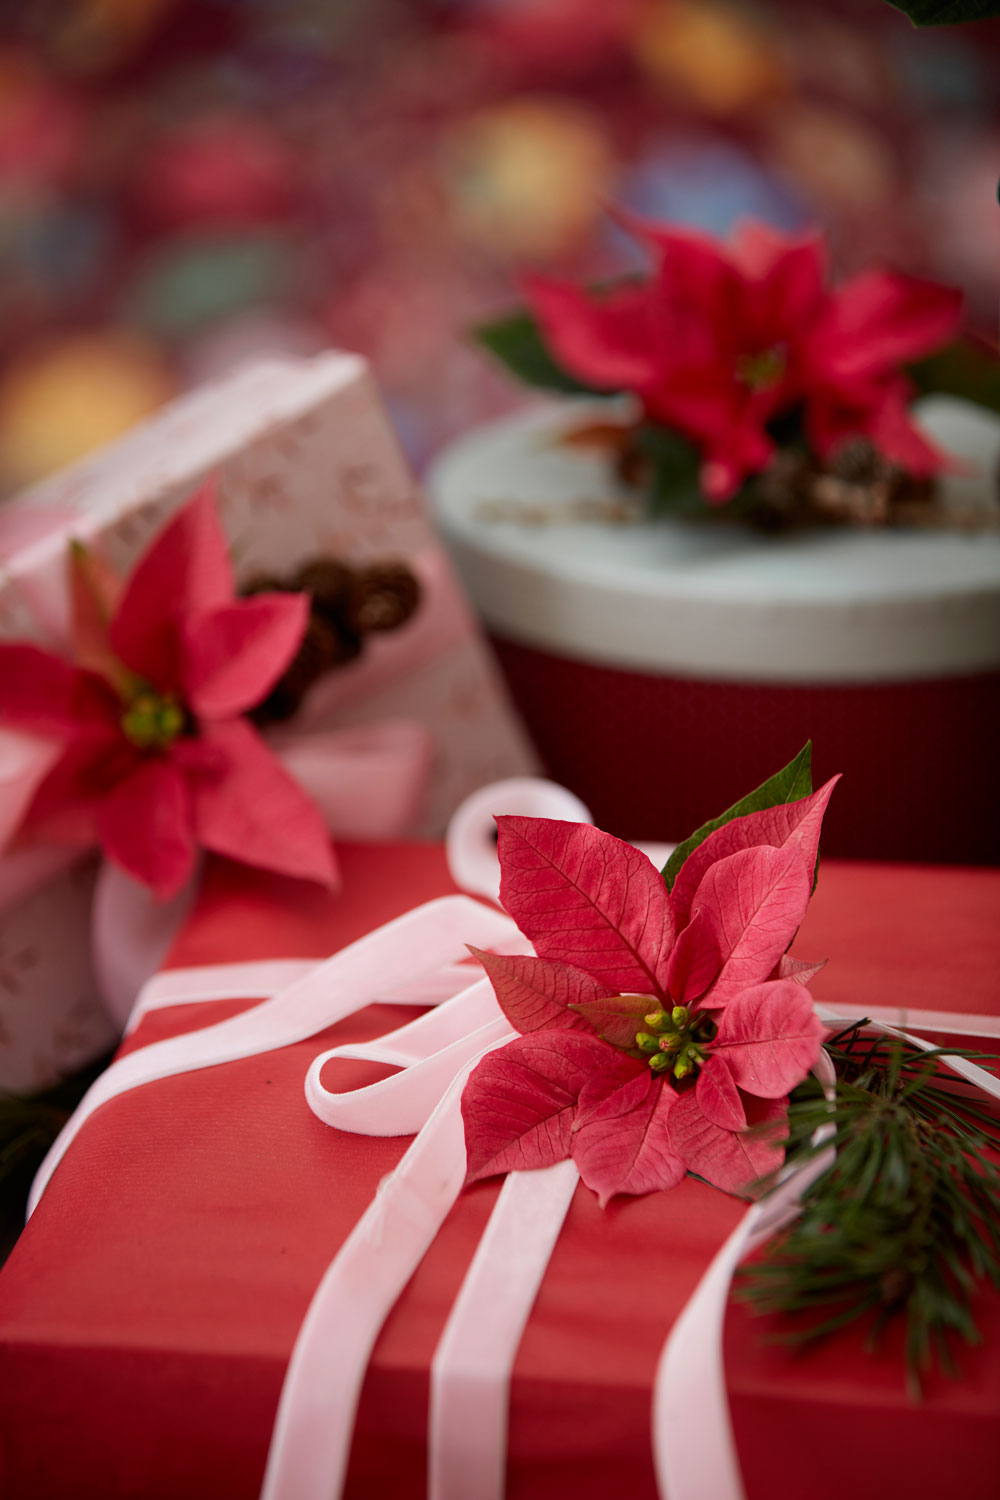 Poinsettias can make the finishing touches to presents